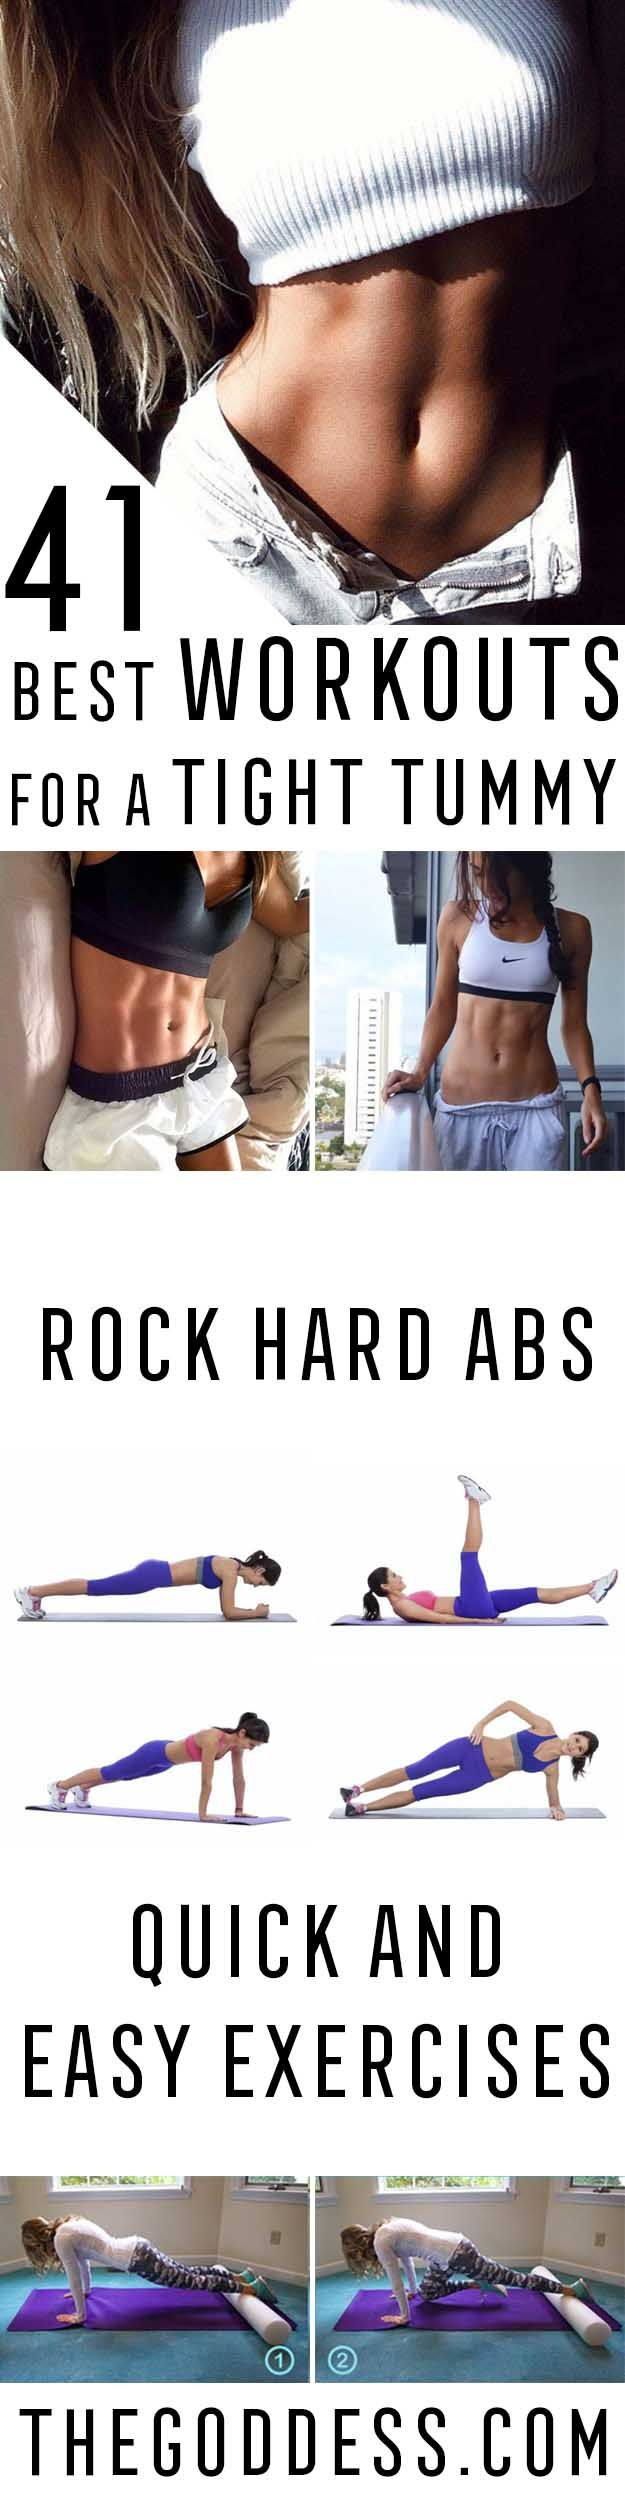 Best Workouts for a Tight Tummy - Ab Exercises and Ab Routine Ideas for Upper and Lower Abs - Get rid of that Belly Pooch, Love Handles or Muffin Top - Workouts and Motivation to Get In Shape, You don't Even Need a Gym - Weightloss Tips for a Healthy Life How to lose weight fast in 2017 get ready to summer #weightloss #fitness